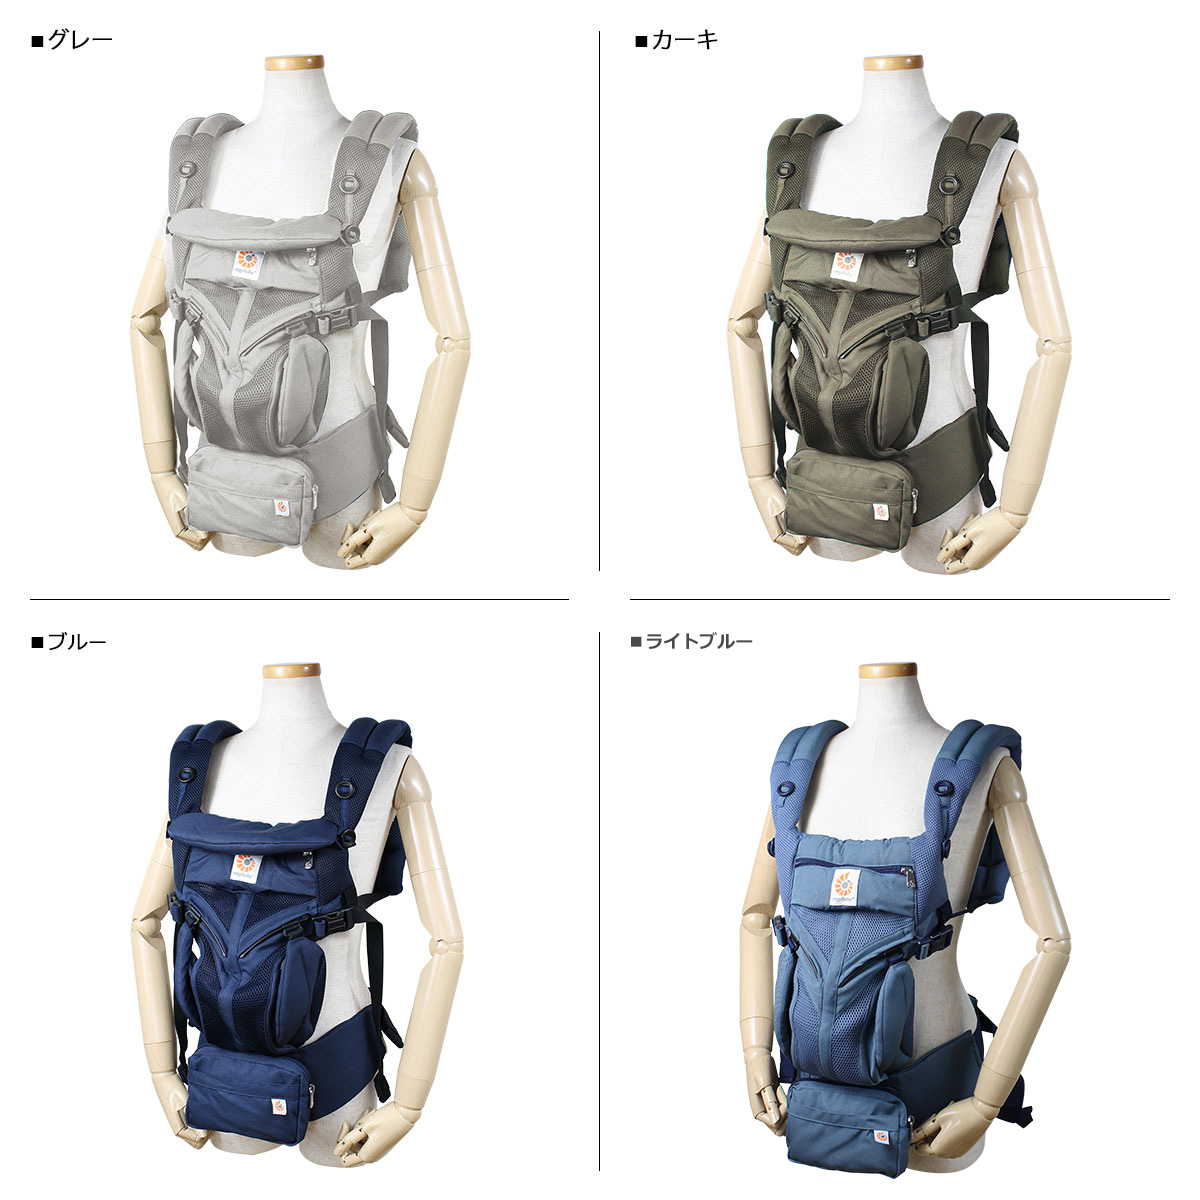 エルゴベビー Ergobaby エルゴ Cuddle String Omni 360 Baby Carrier Newborn Baby Omni 360 Baby Carrier All In One Cool Air Mesh Bcs360p The